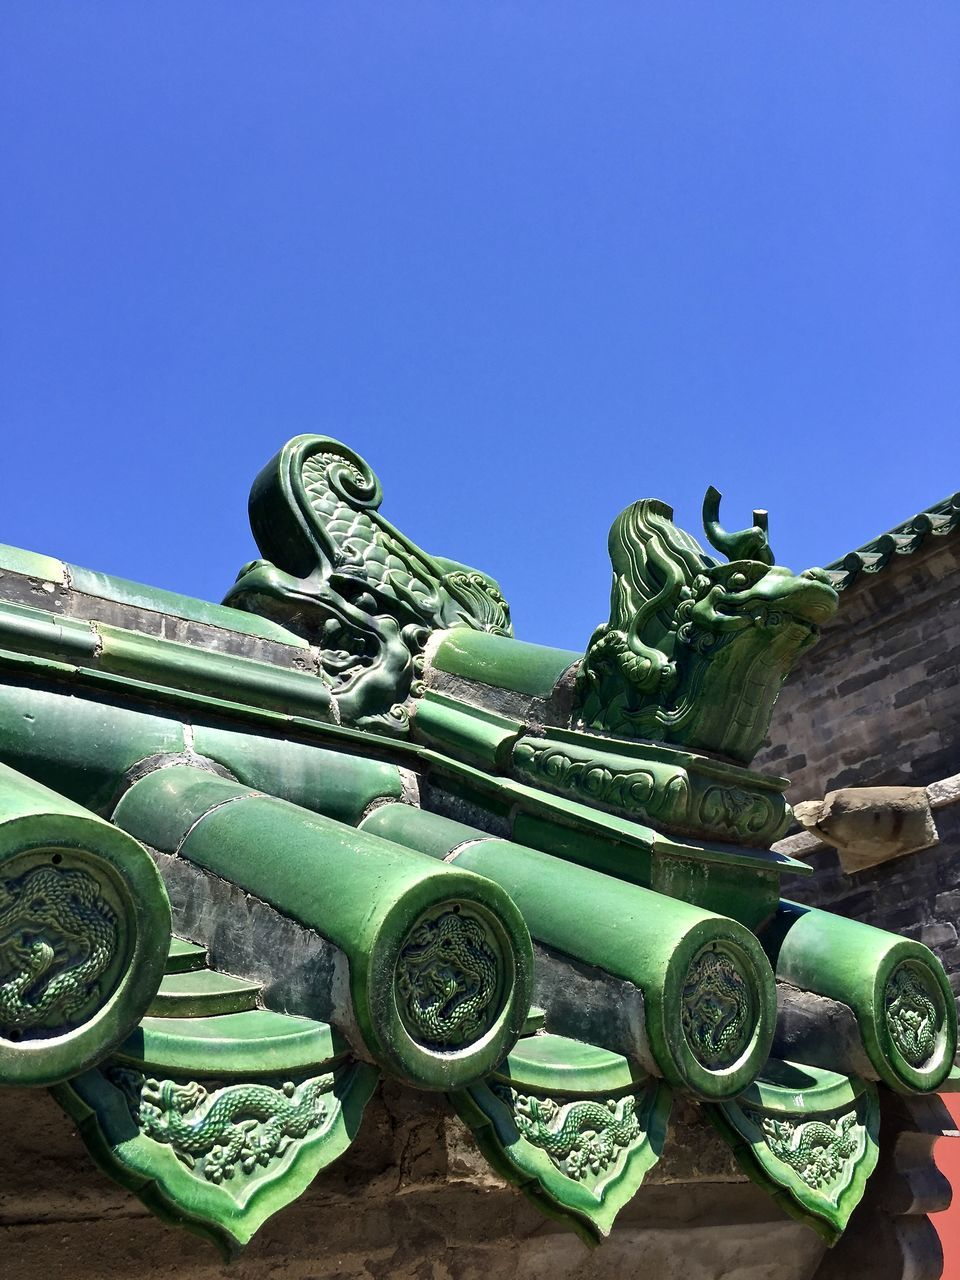 weapon, blue, metal, green color, day, low angle view, no people, clear sky, history, outdoors, military, war, sky, close-up